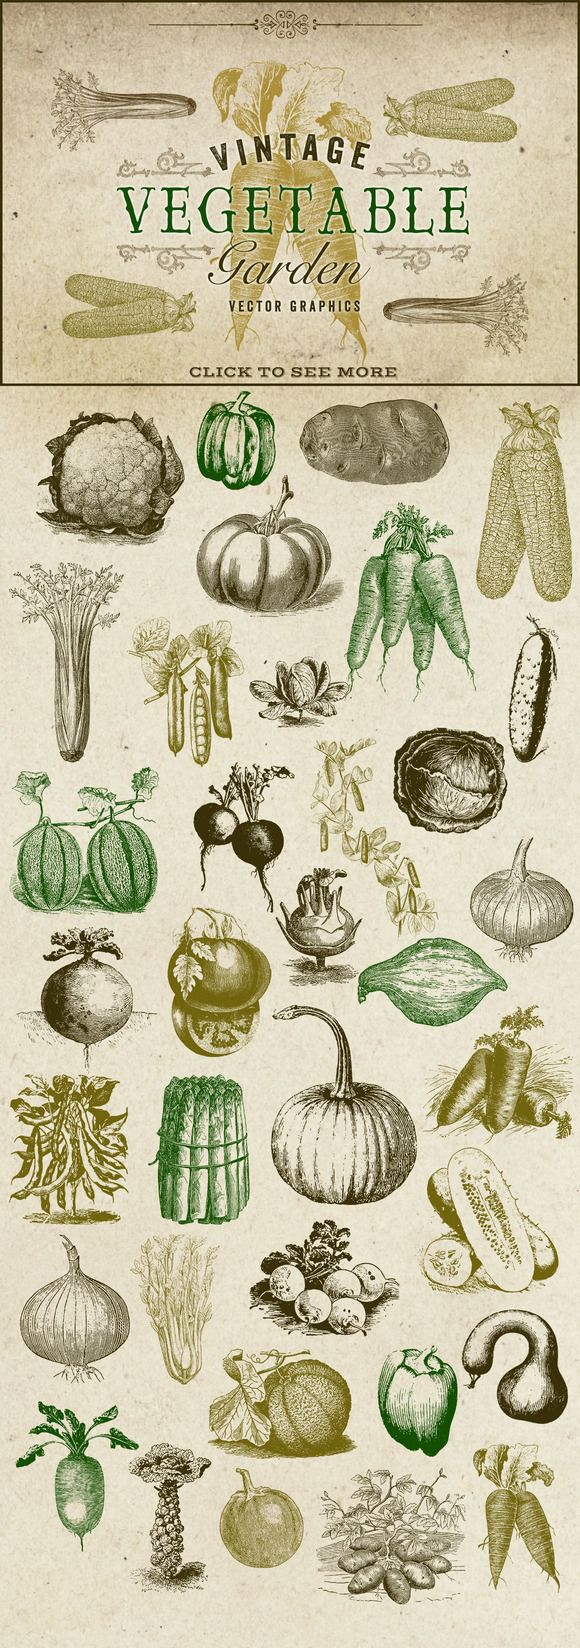 Vegetable garden graphic - Vintage Vegetable Garden Graphics